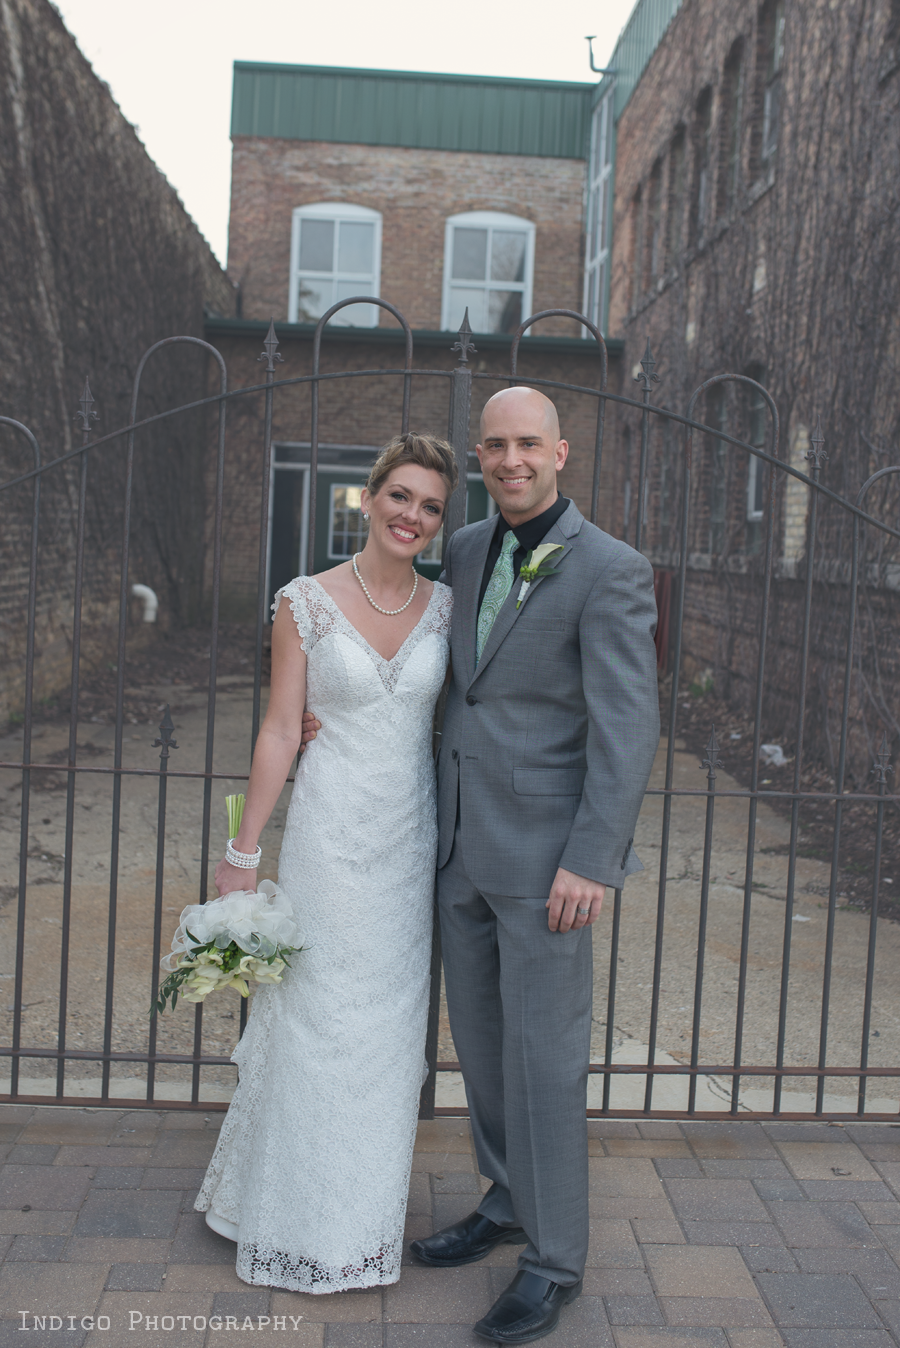 indigo-photography-rockford-il-wedding-photographers